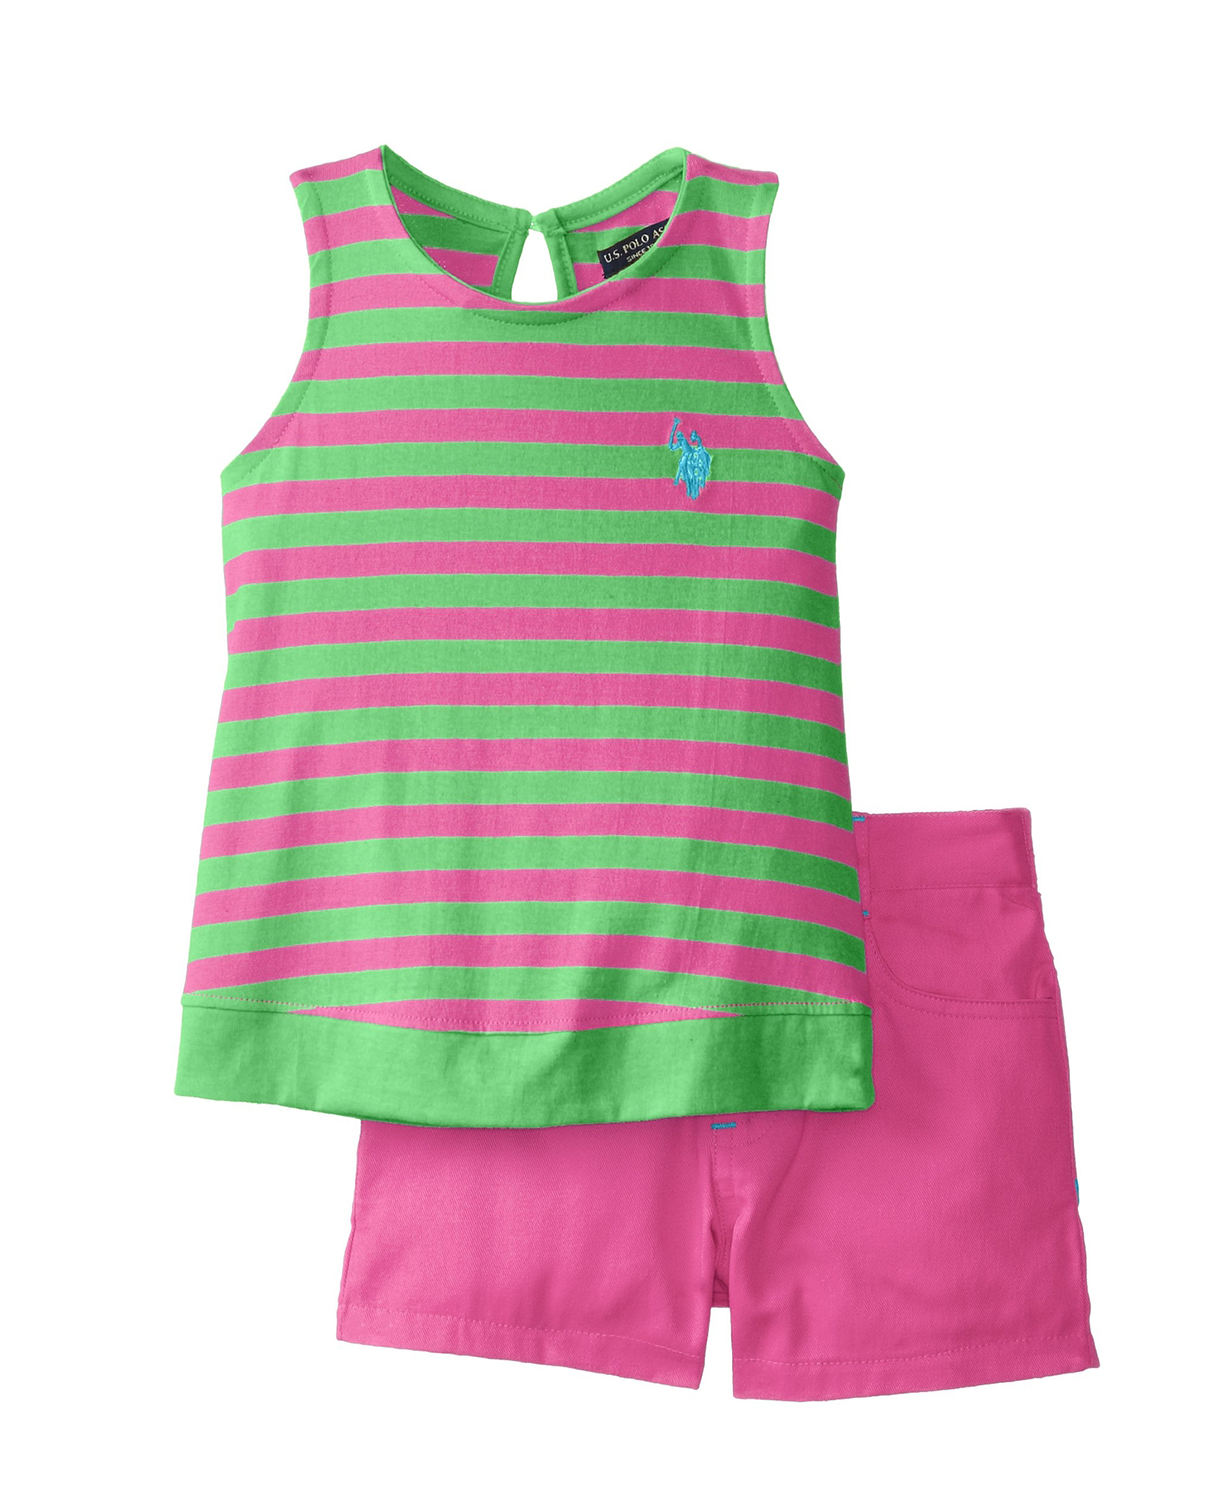 Find Big Kids Girls' Clothing at specialtysports.ga Enjoy free shipping and returns with NikePlus.